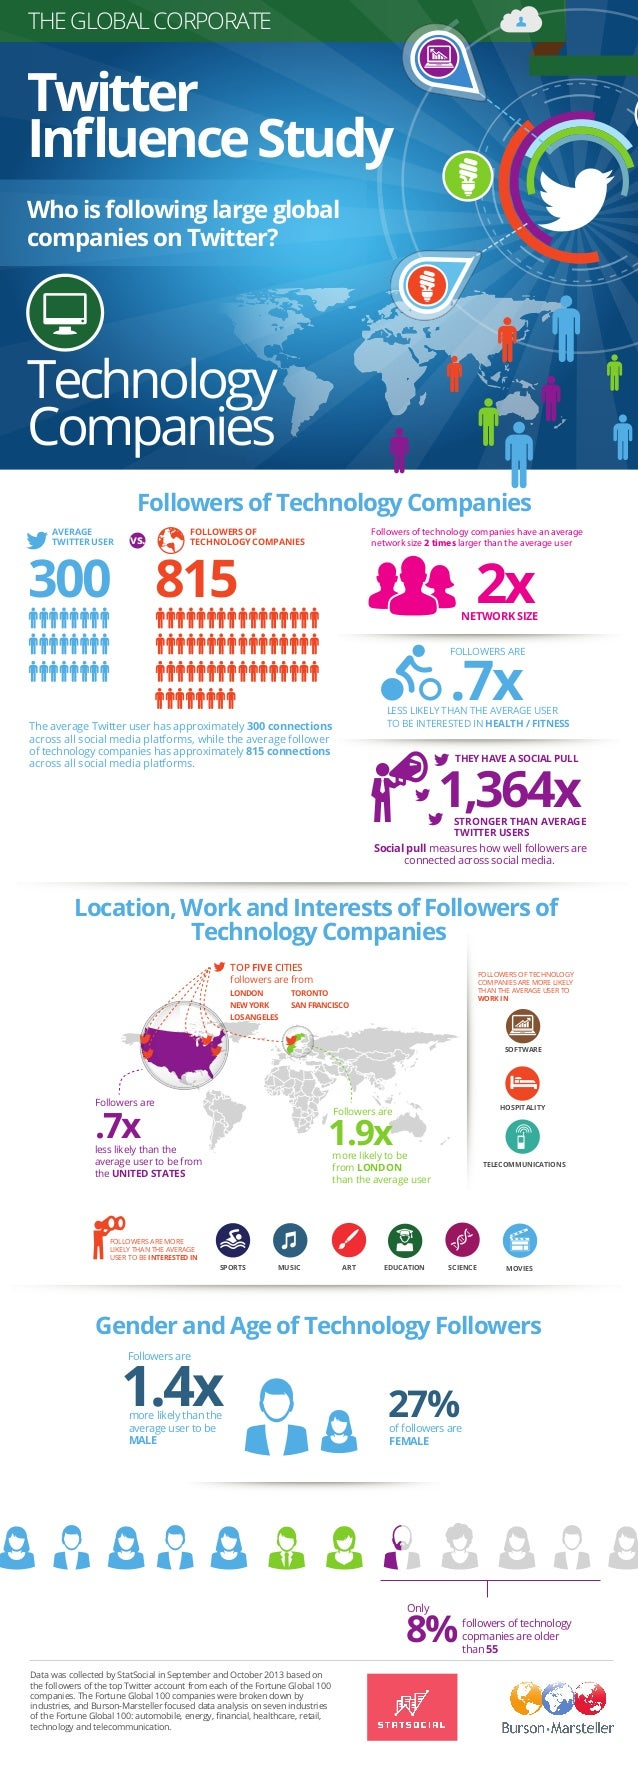 Burson-Marsteller Global Corporate Twitter Influence Study: Technology Companies